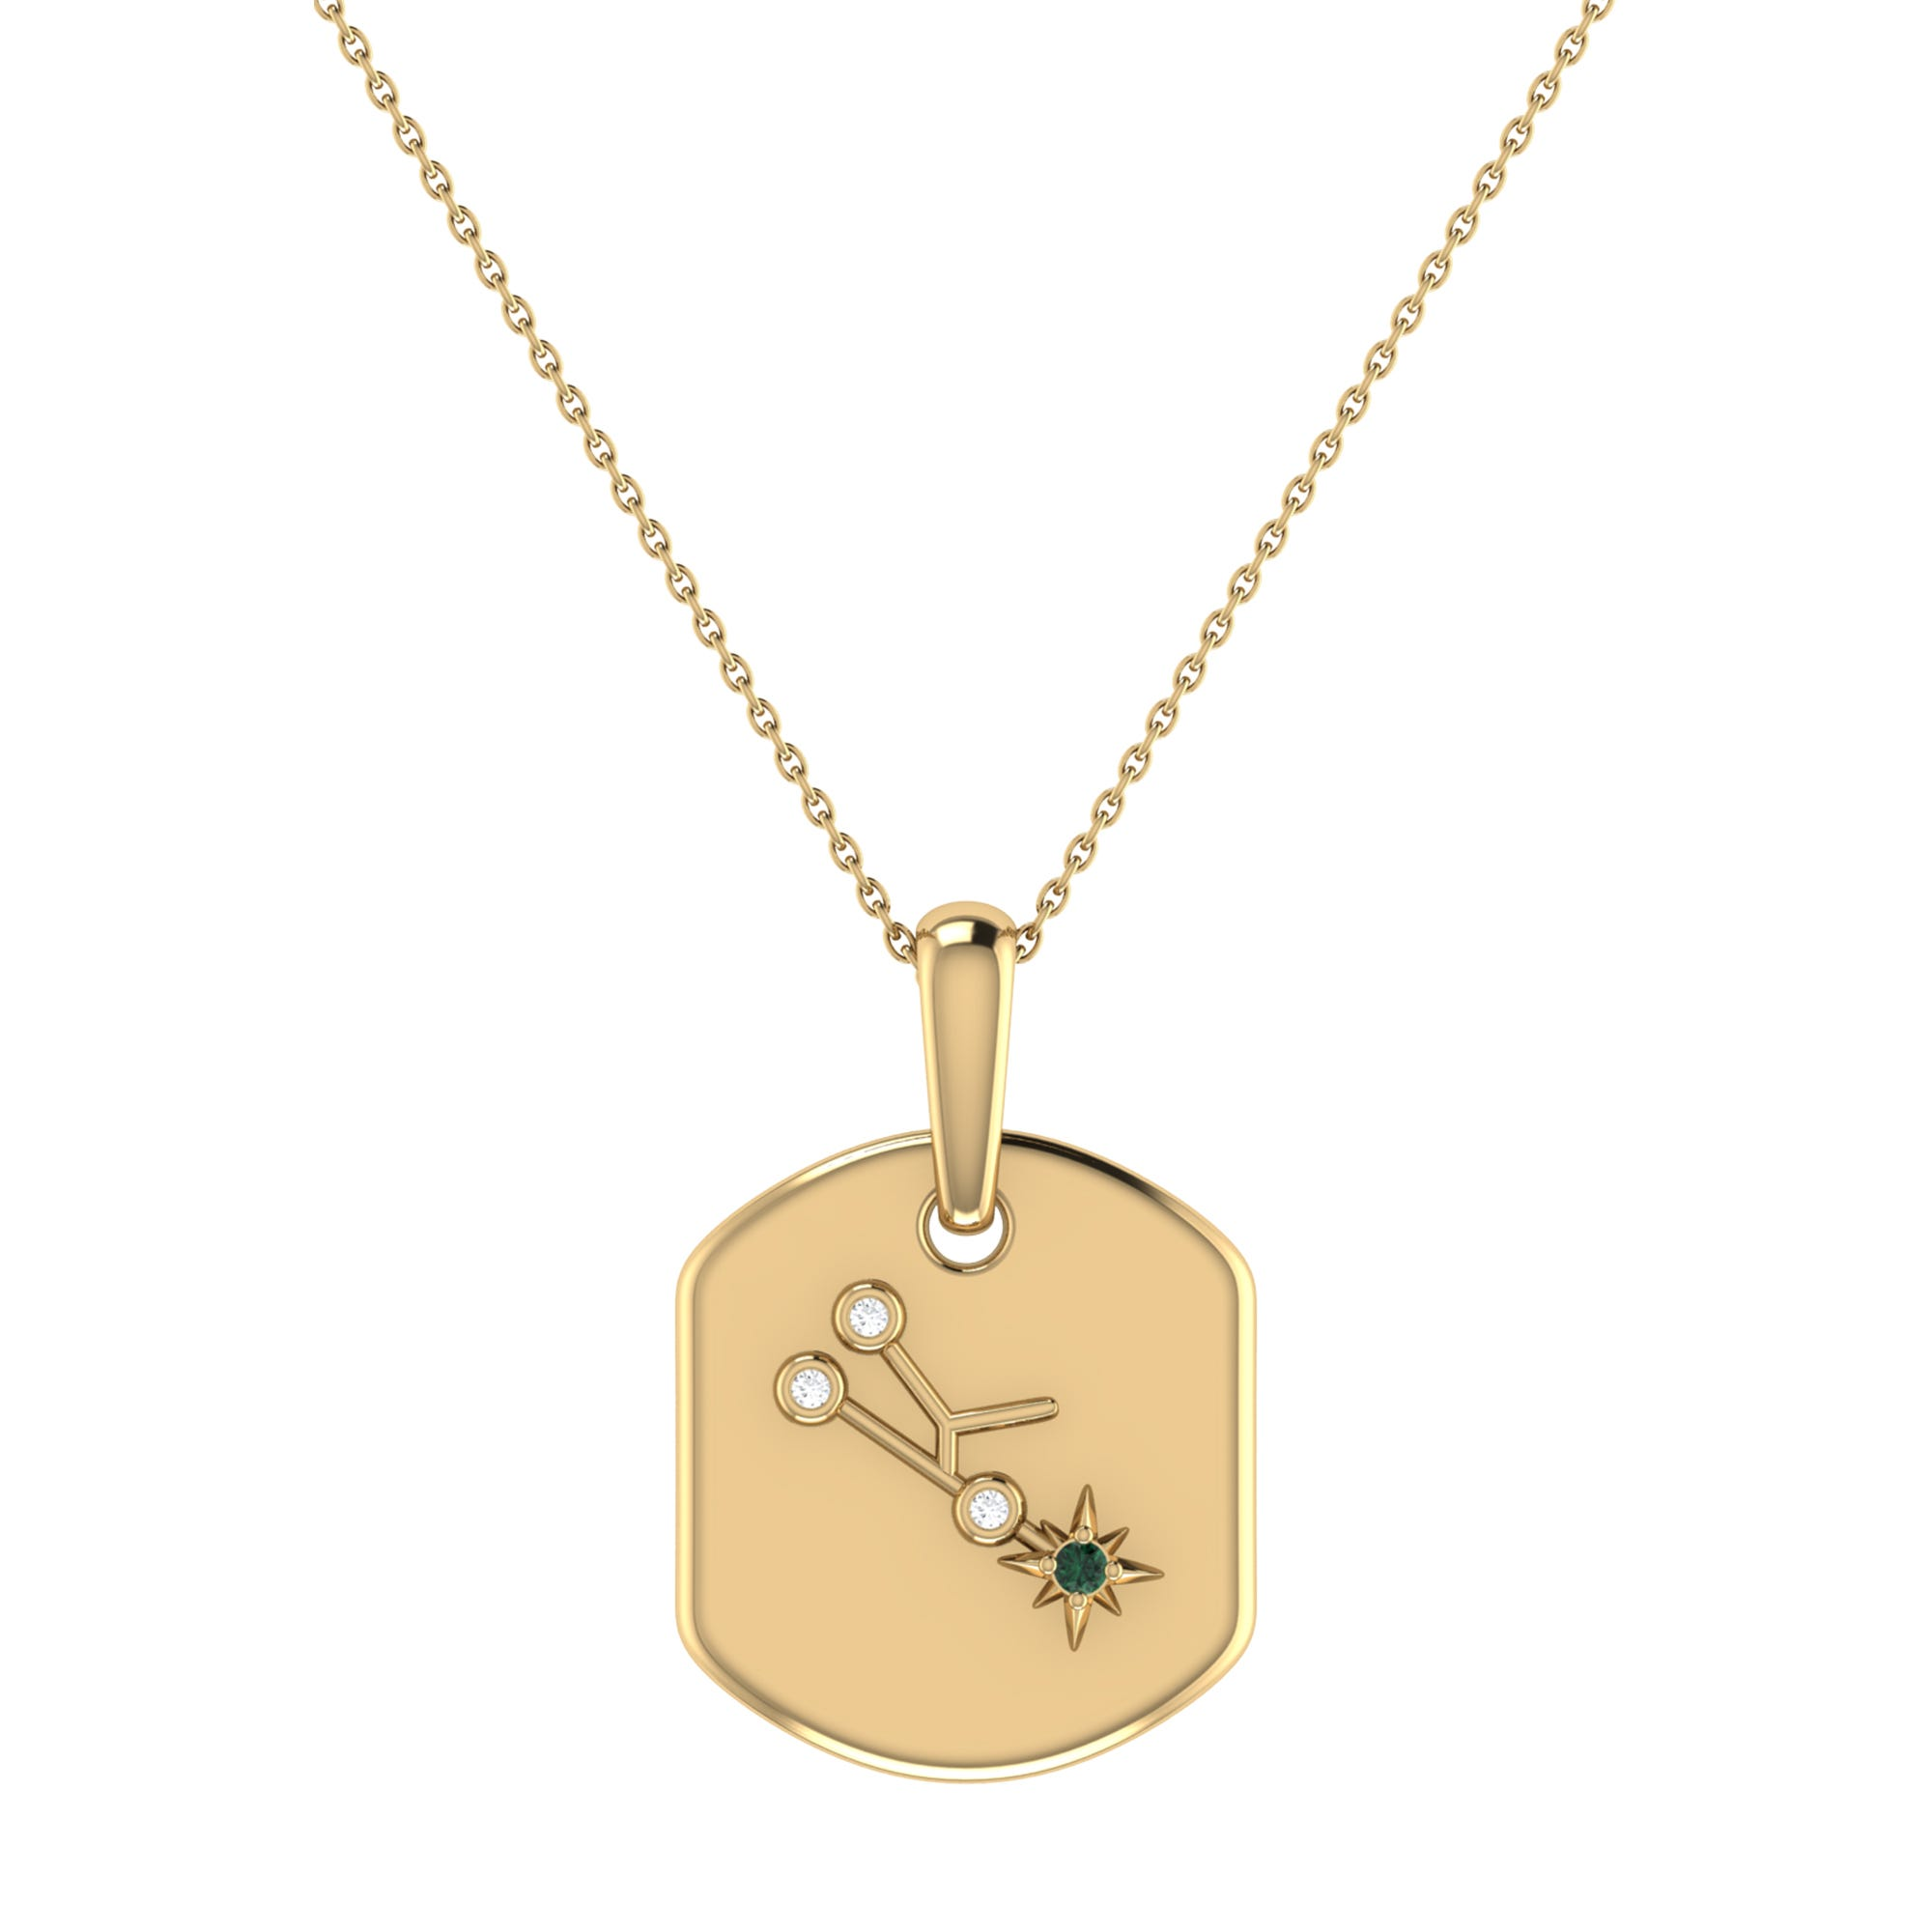 Diamond and Emerald Taurus Constellation Tag Necklace in 14k Yellow Gold Plated Sterling Silver